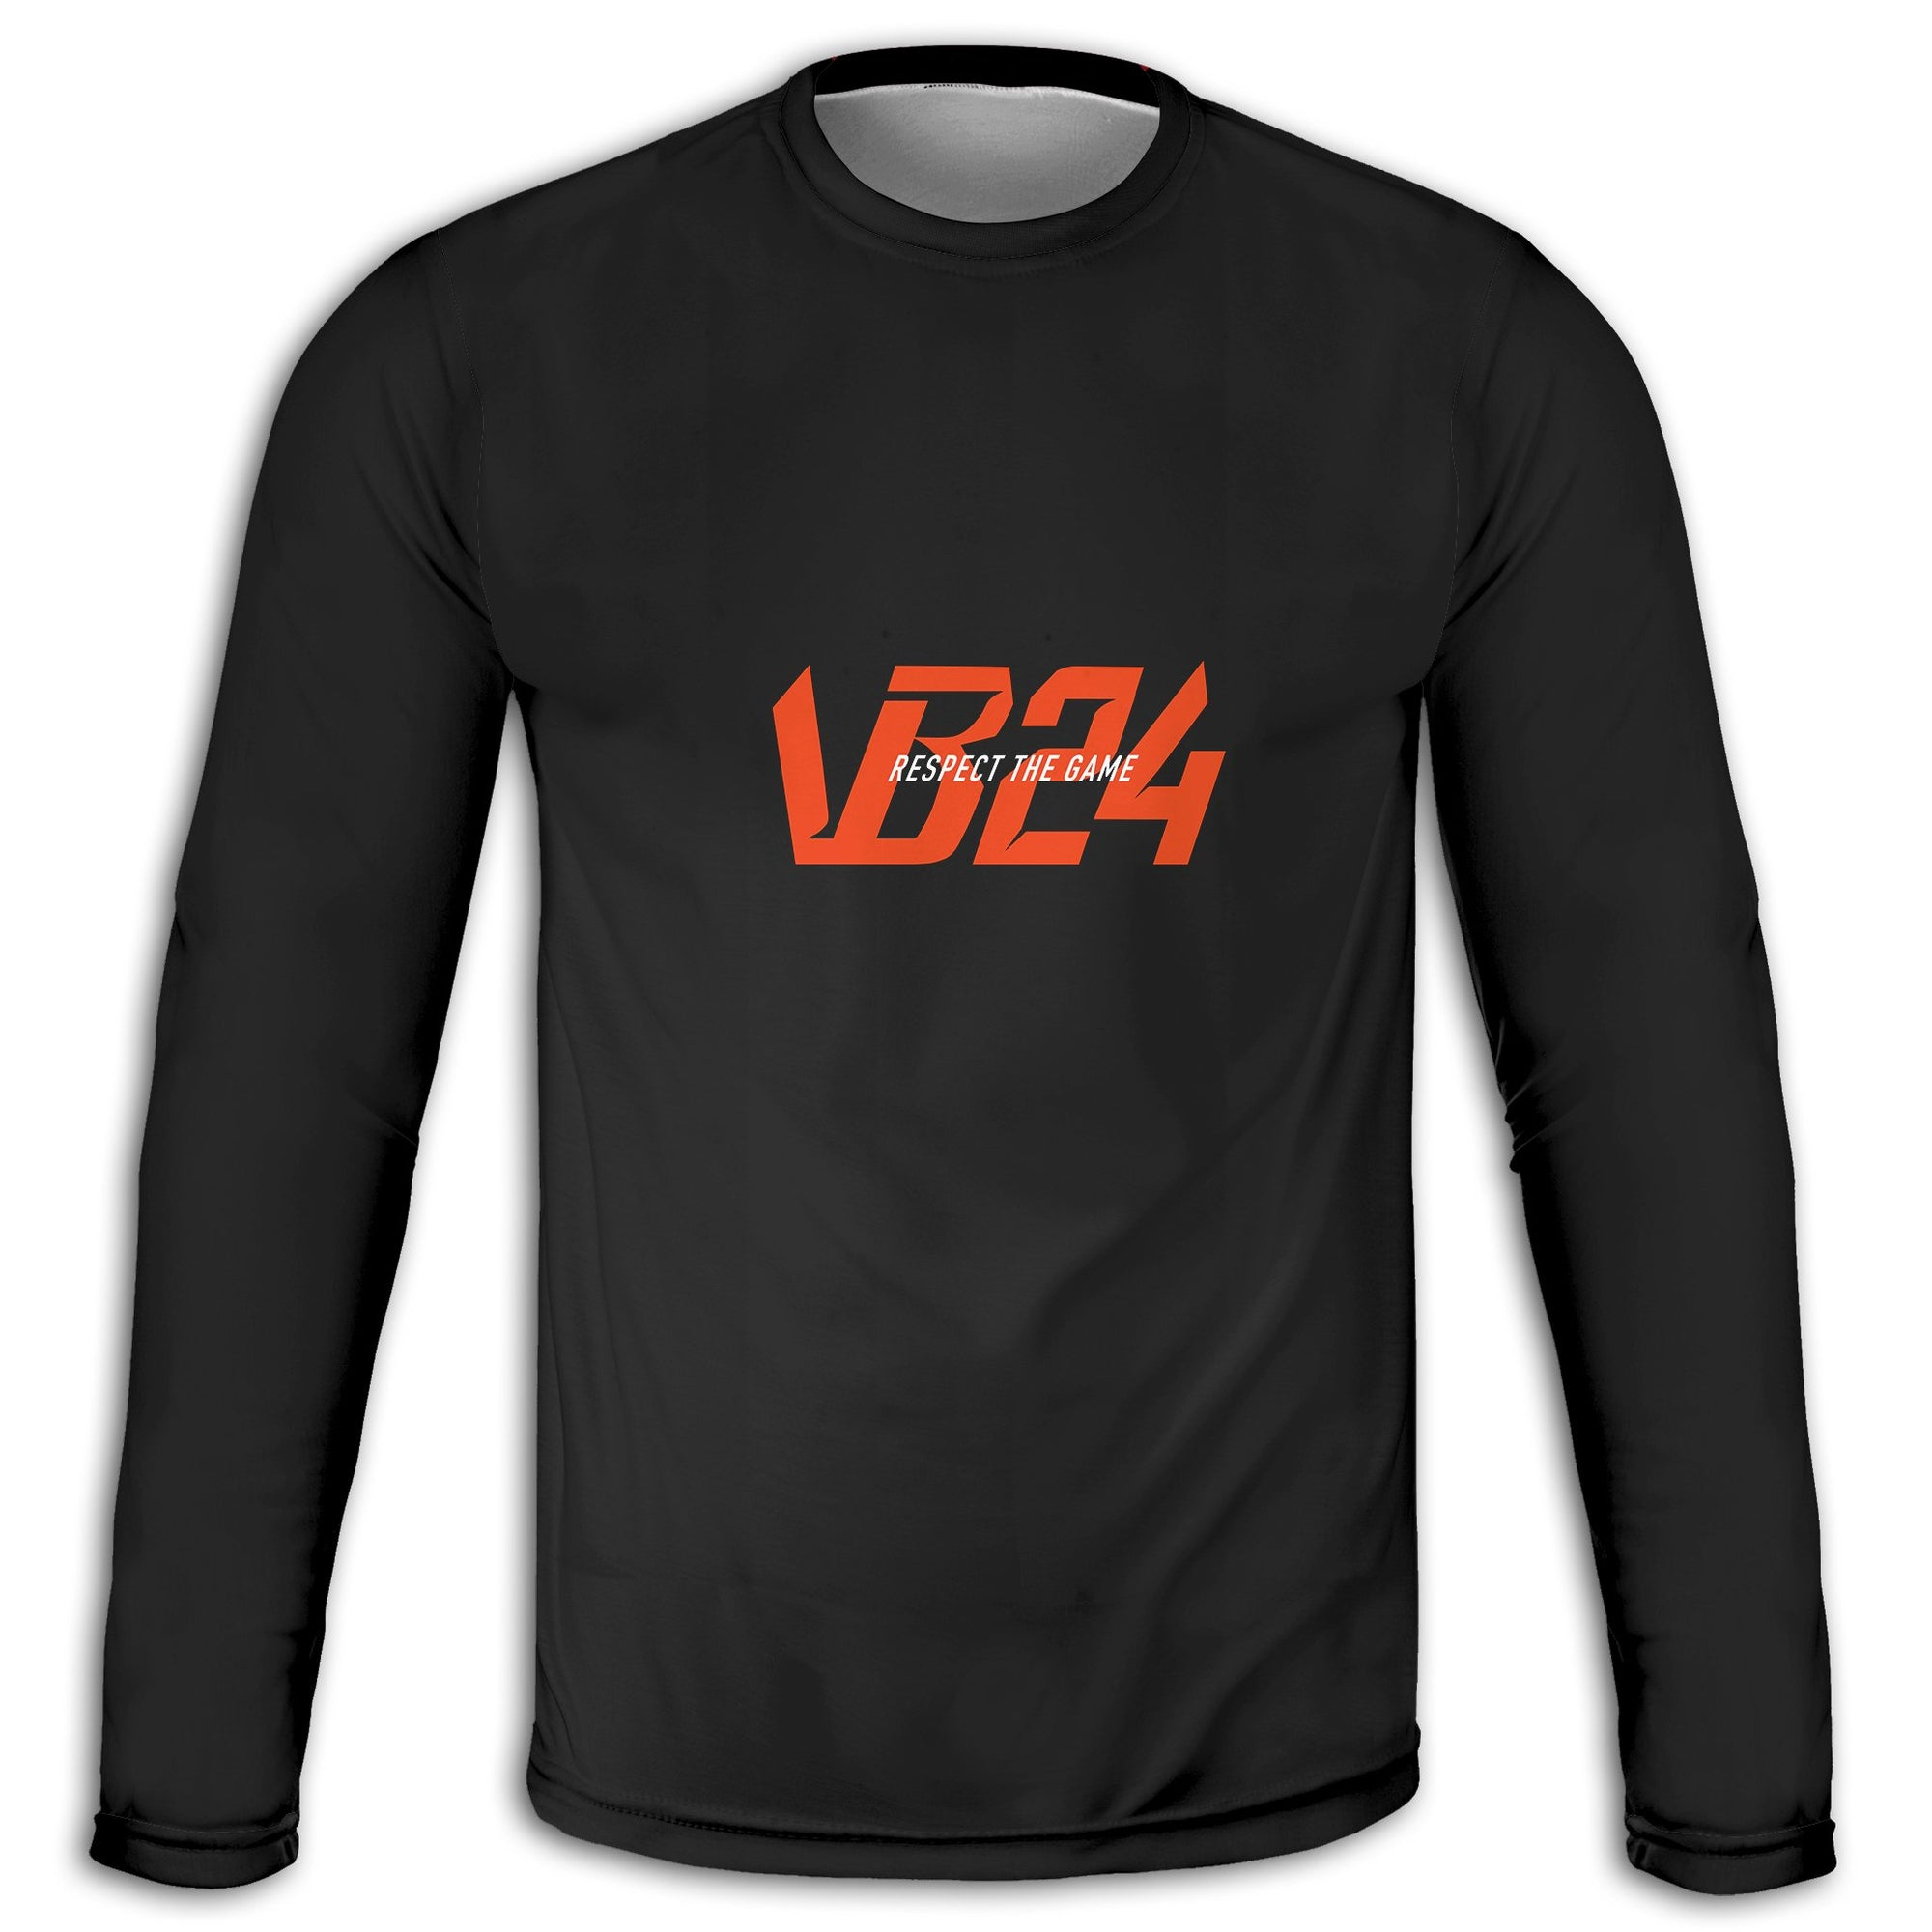 Respect The Game Long Sleeve Tee | vonbellshop.com